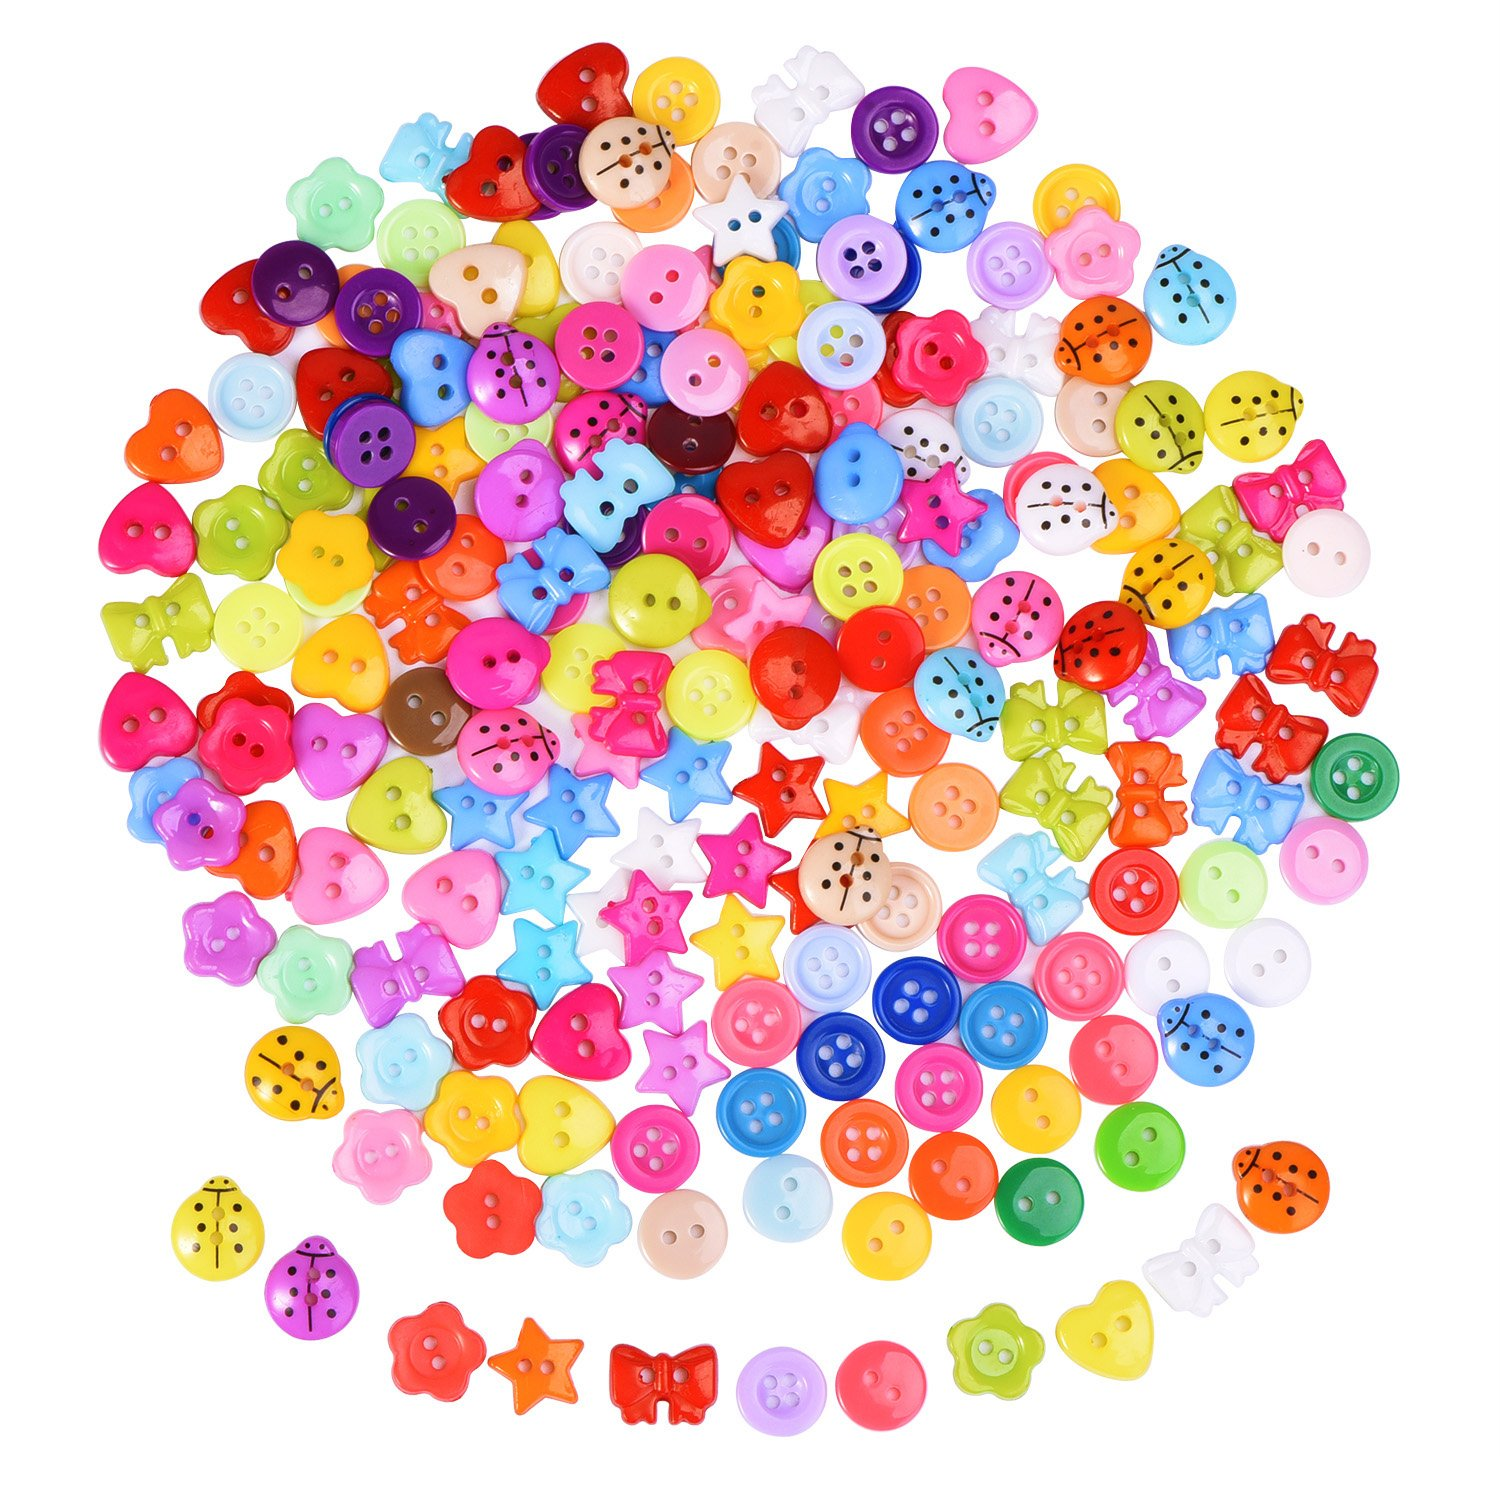 200 Pieces Resin Buttons Assorted Color Button Small Buttons Lot for Sewing Craft Scrapbooking and DIY Handmade Ornament Shappy